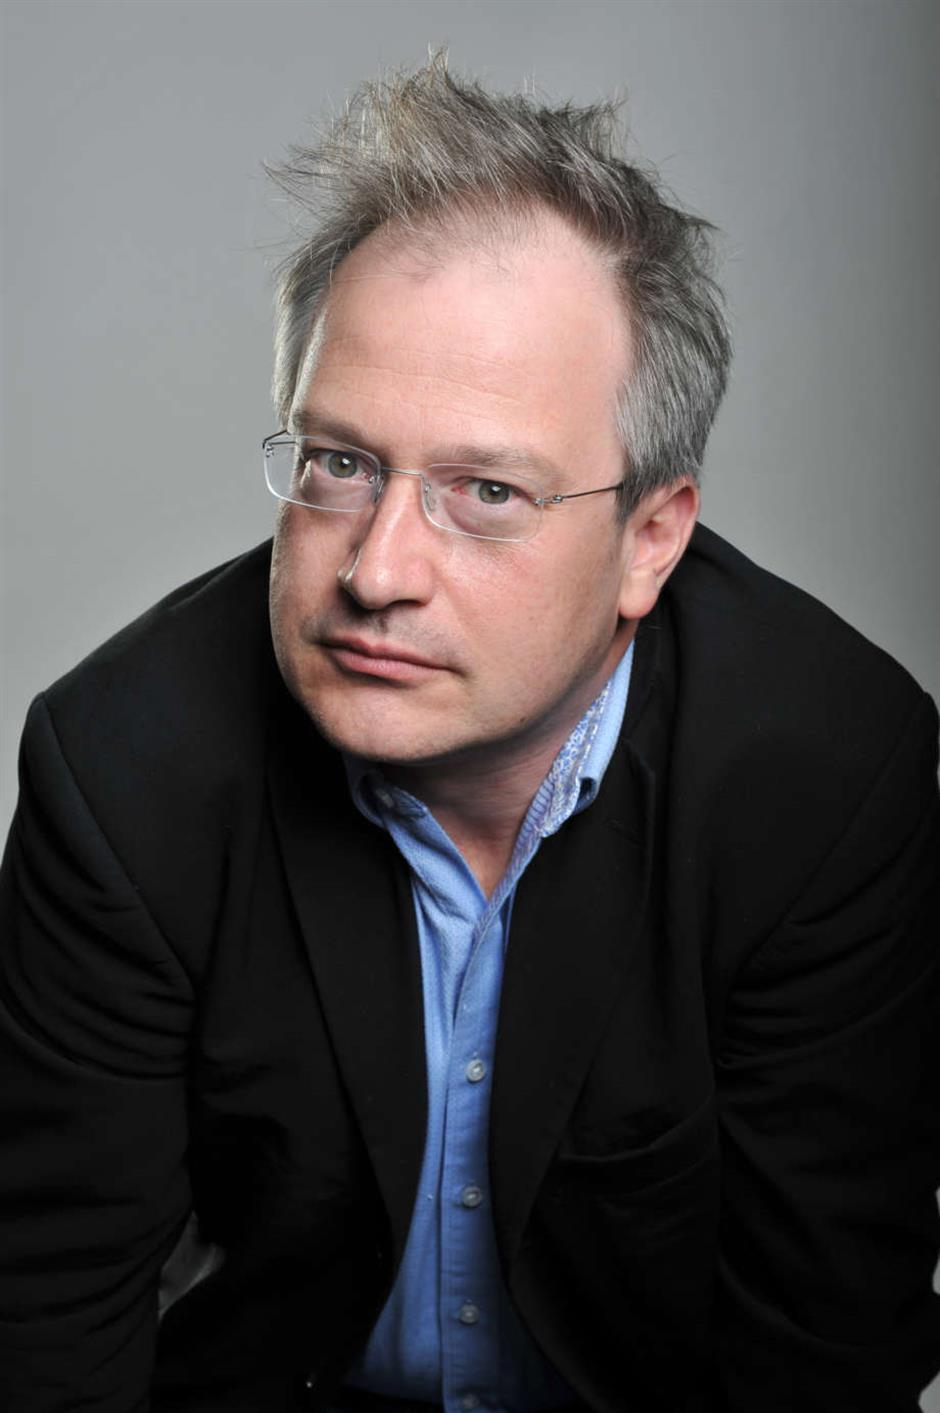 Robin Ince: I'm a Joke and So Are You - A Comedian's Take on What Makes Us Human